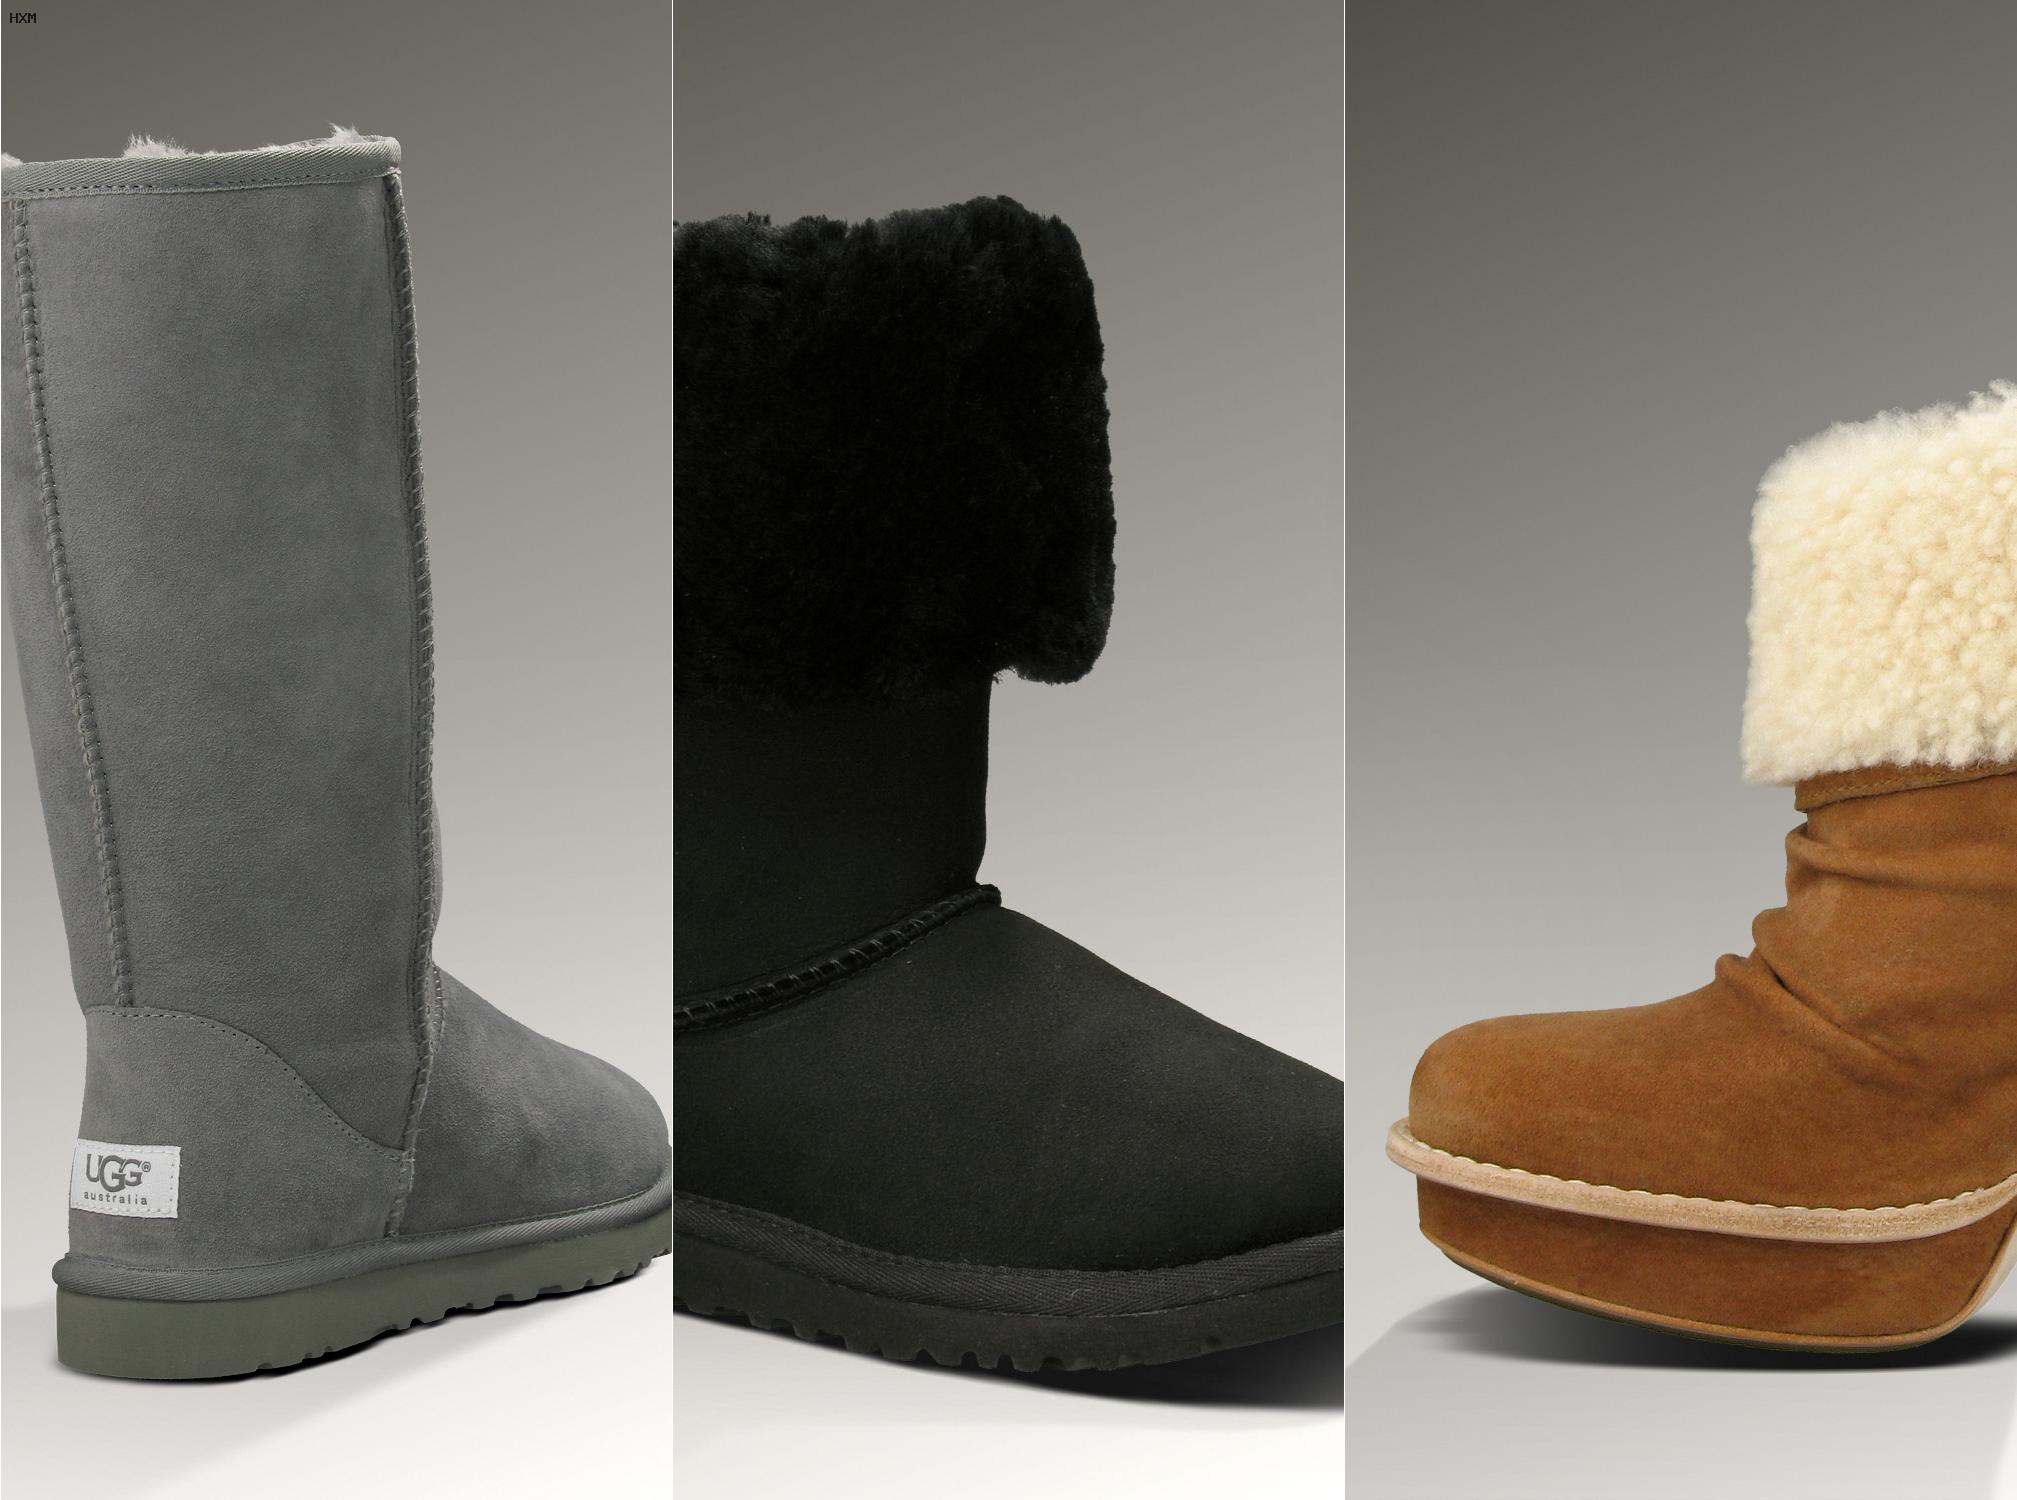 ugg boots cost in america